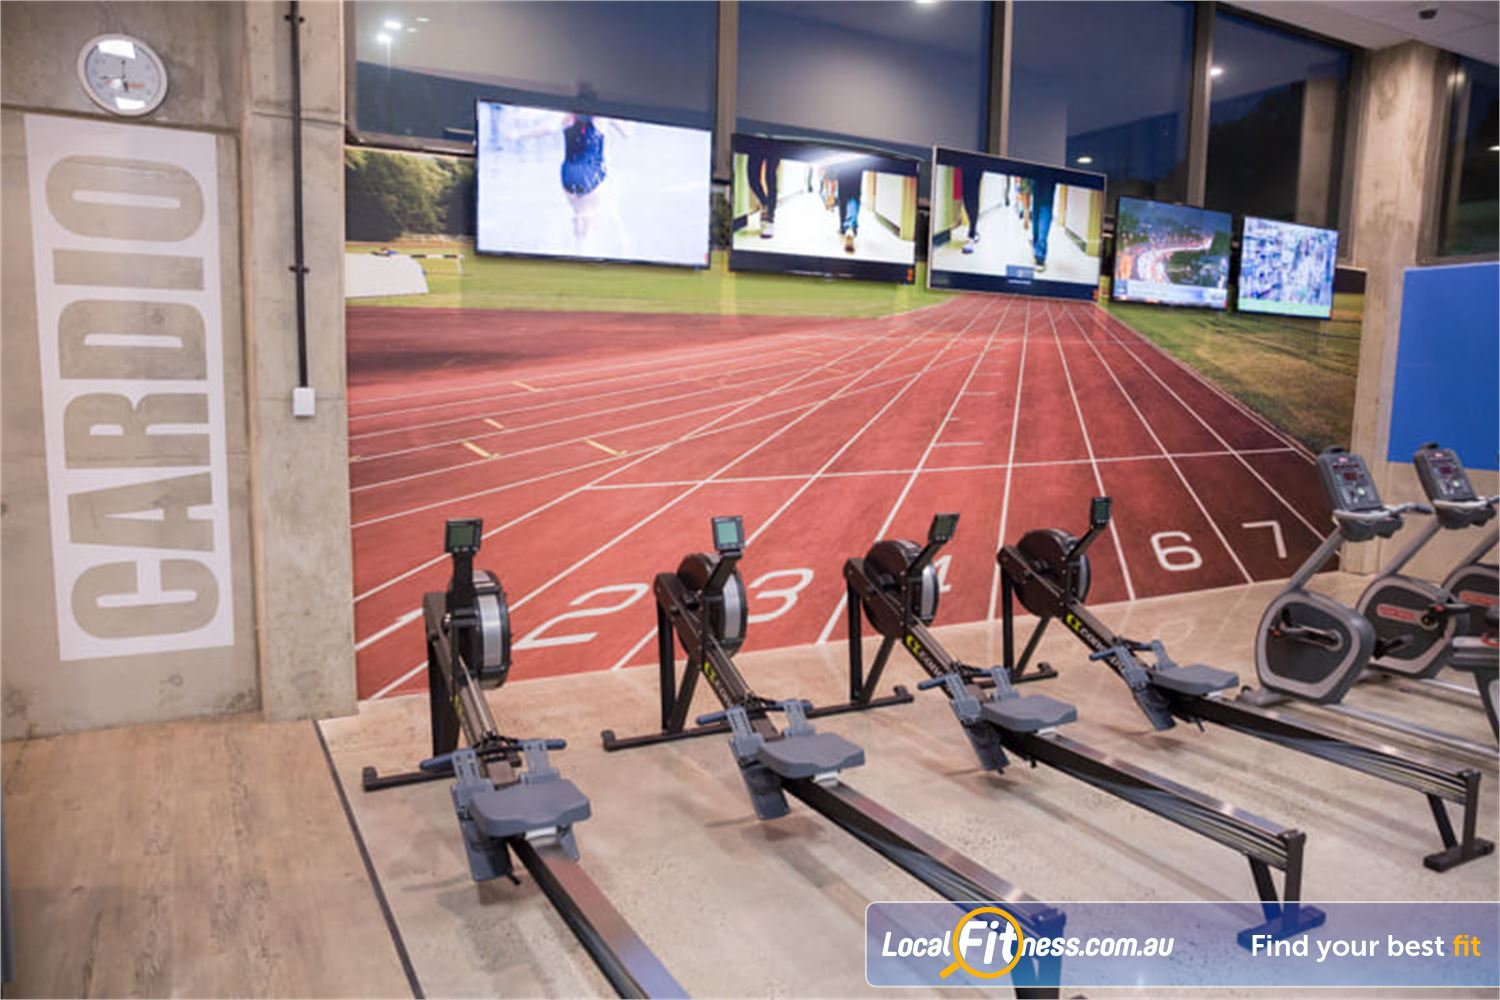 Fit n Fast Near Prairiewood Get into a HIIT cardio workout in our cardio area.